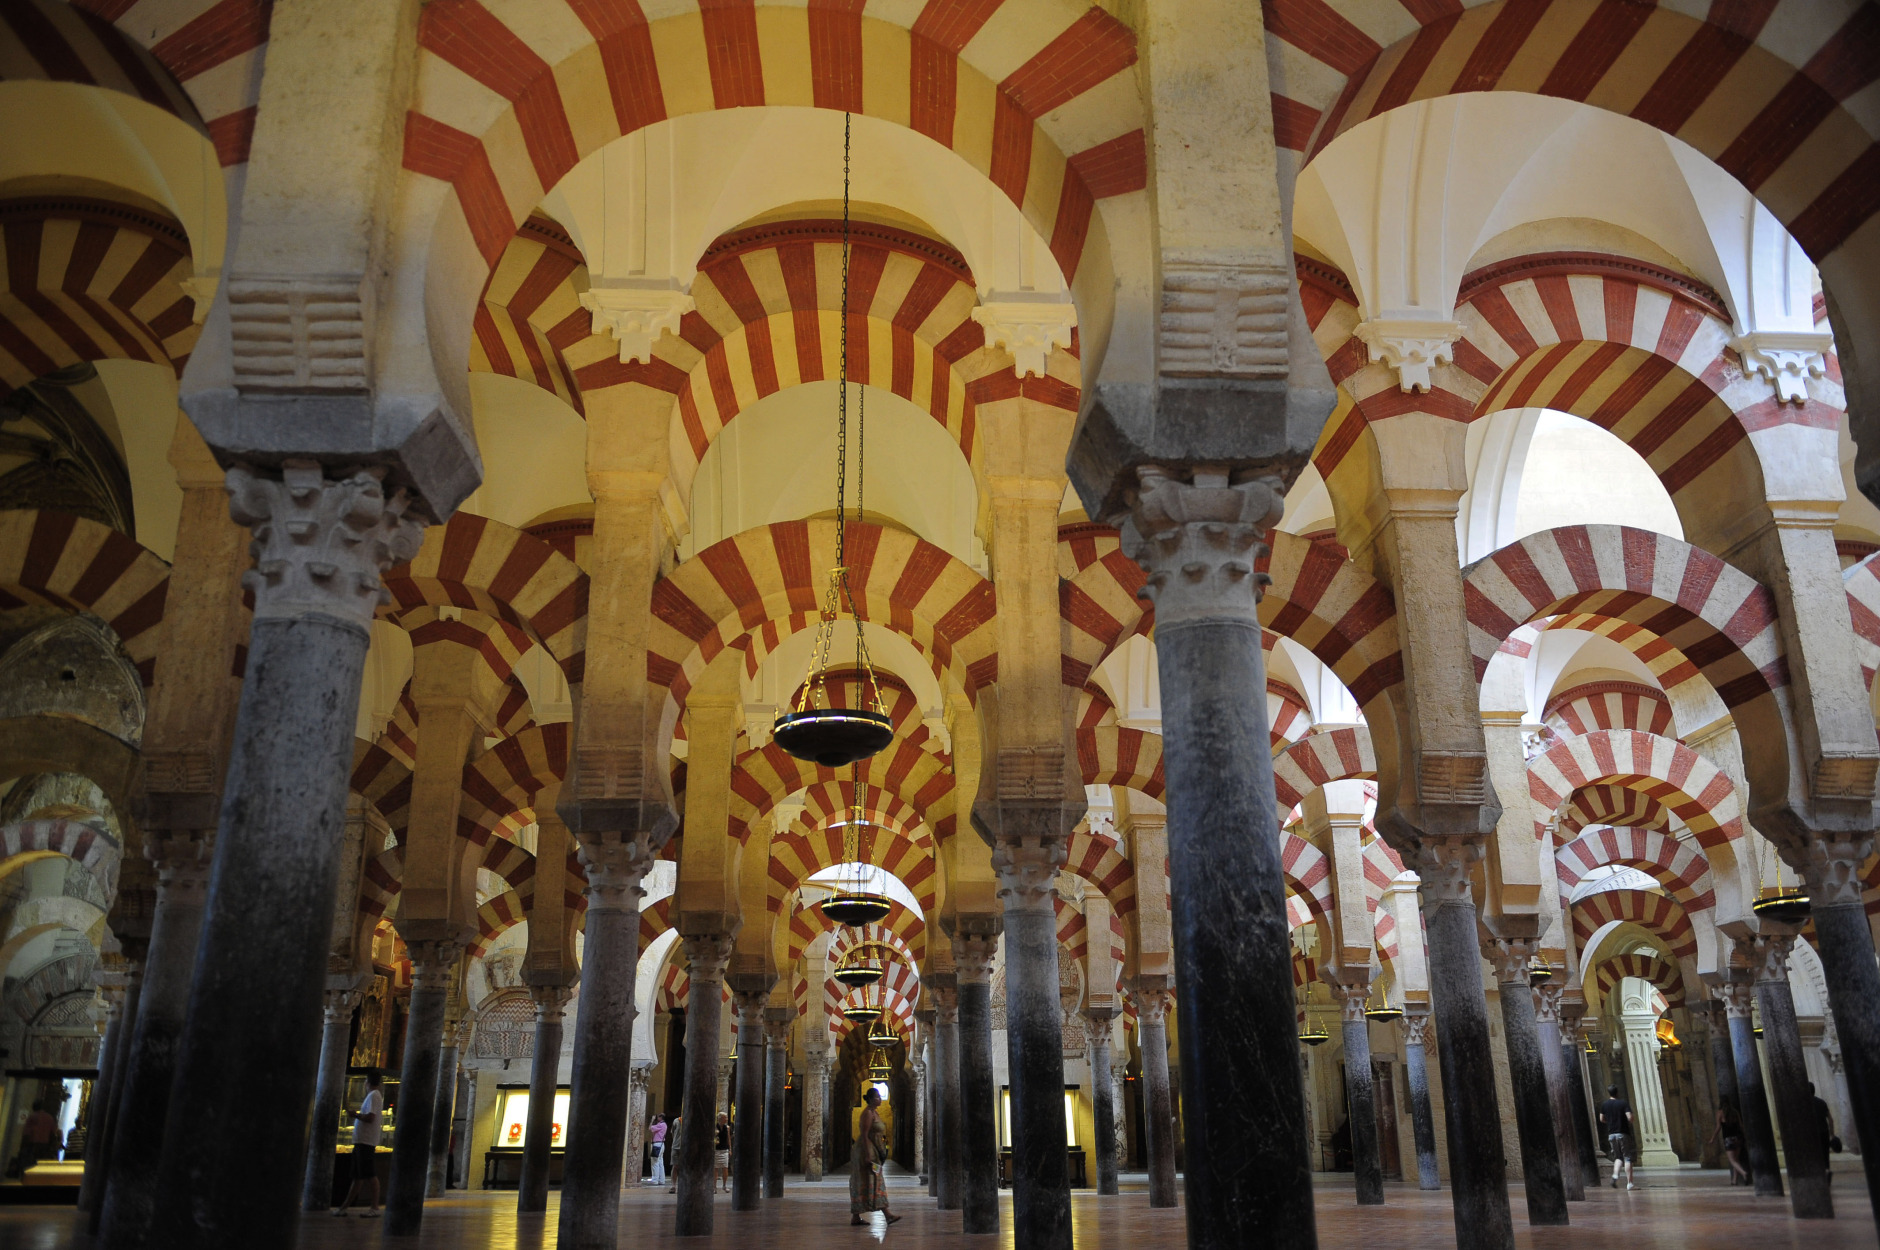 tourist attractions in spain,MEZQUITA